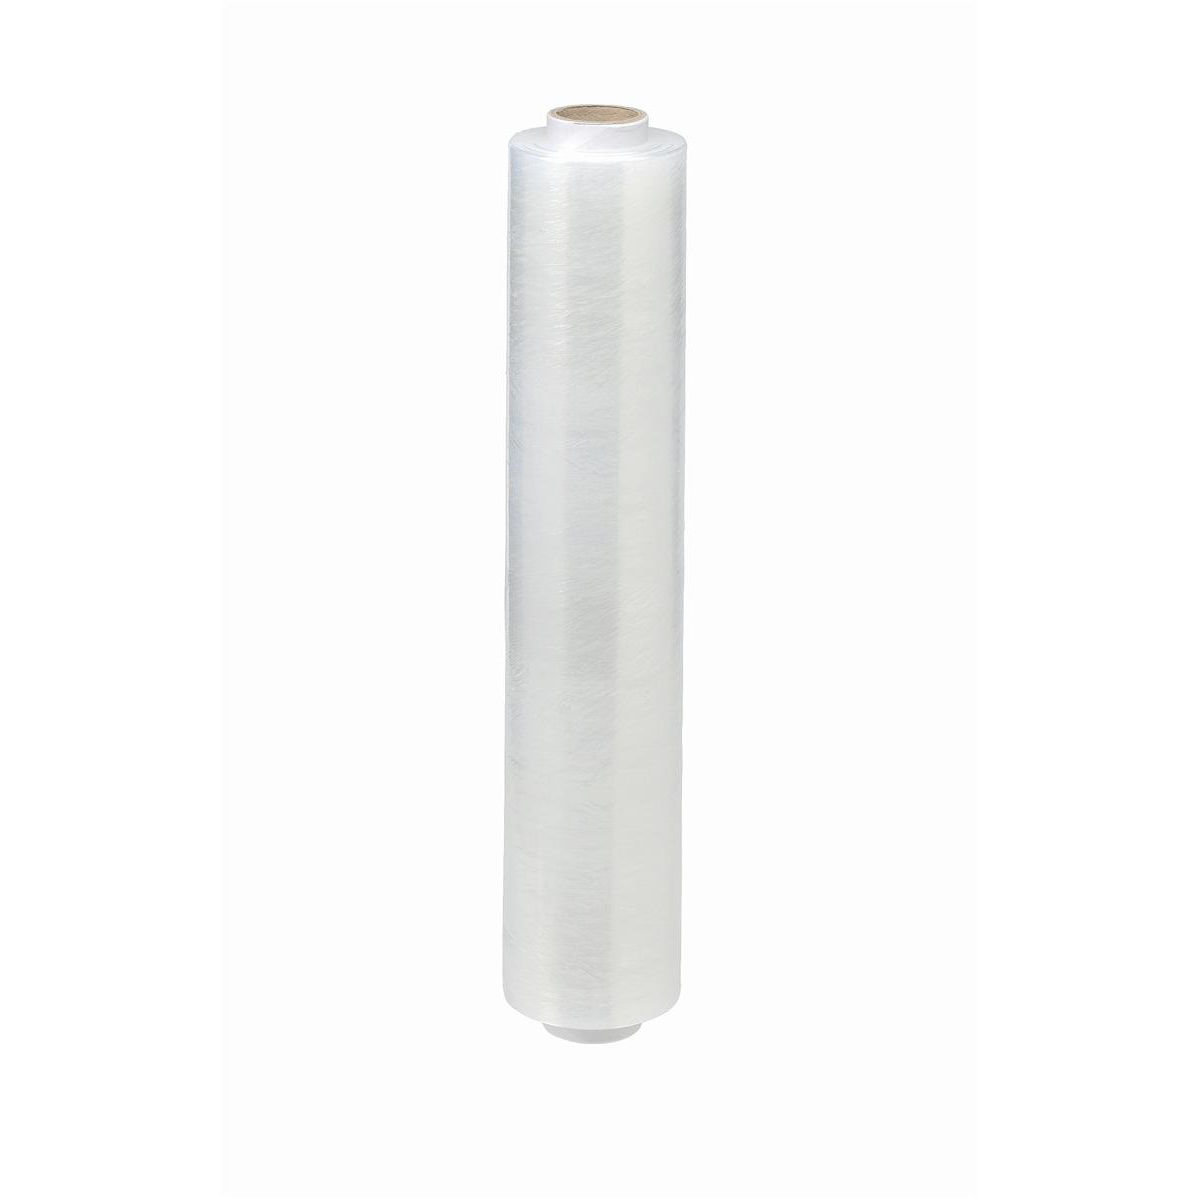 Stretch Film Blown 15 Micron 400mmx250m Clear Pack 6